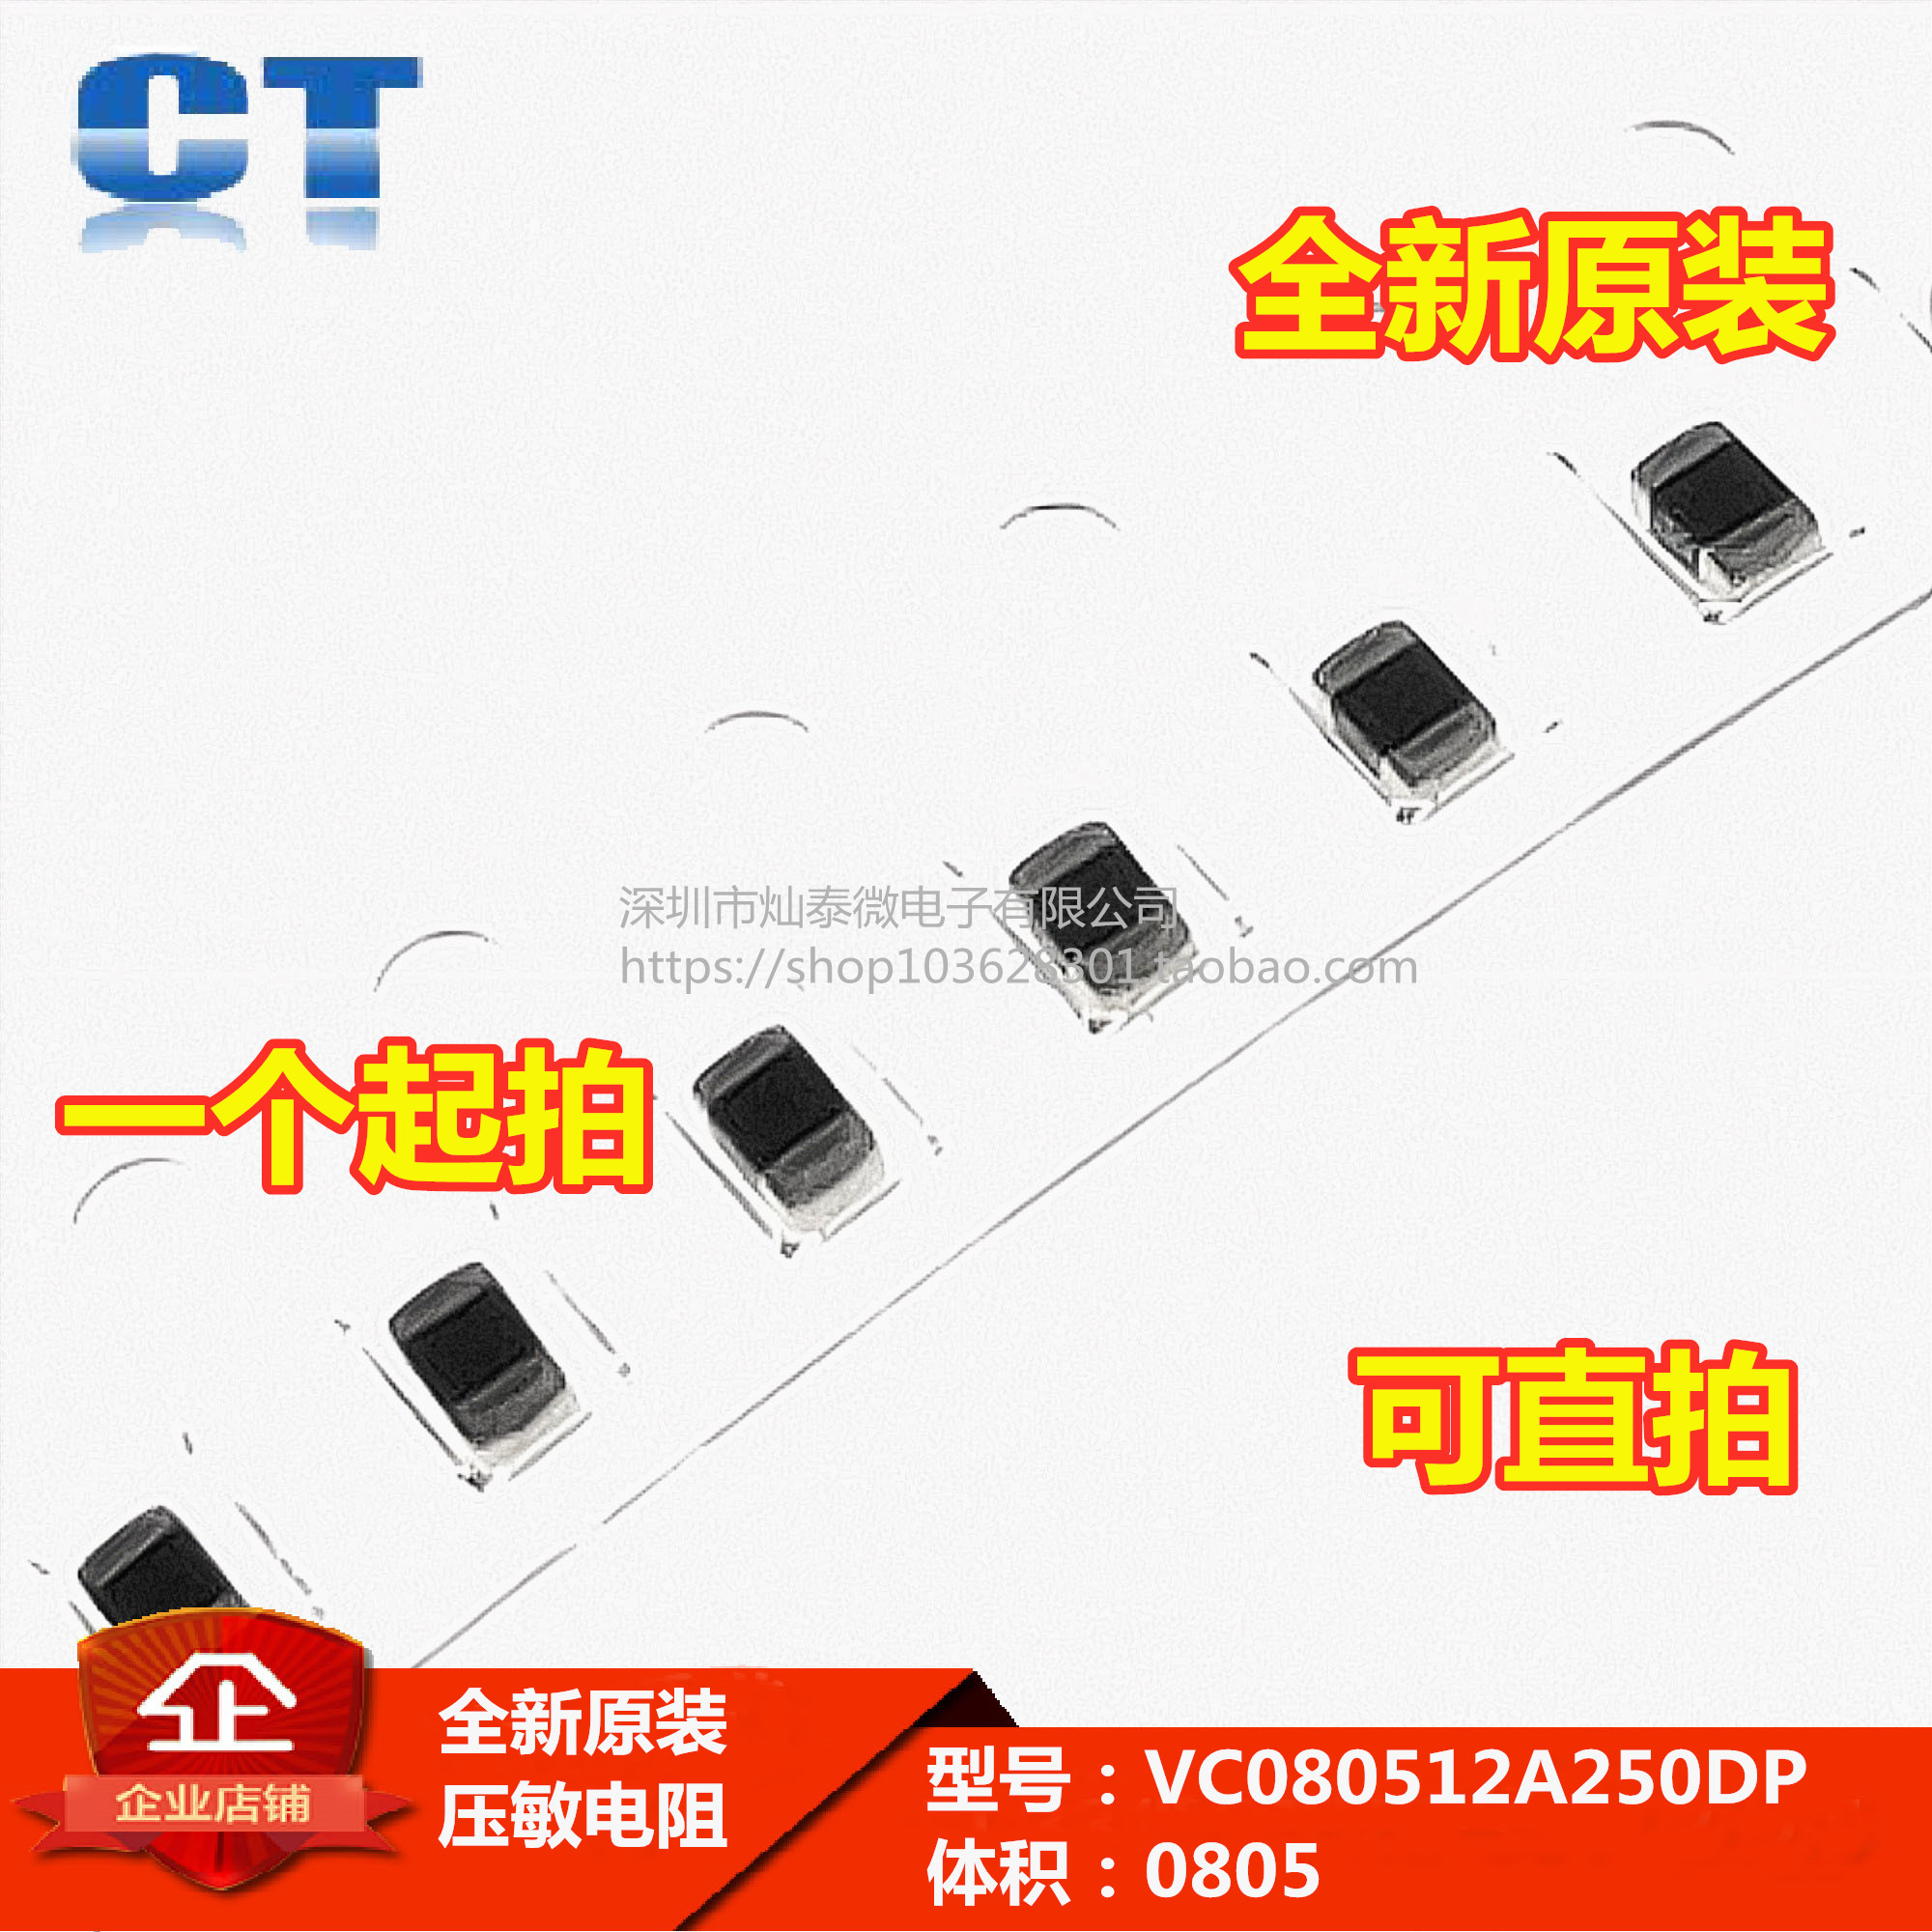 New original VC080512A250DP patch  varistor   resistor  needs to be photographed directly.